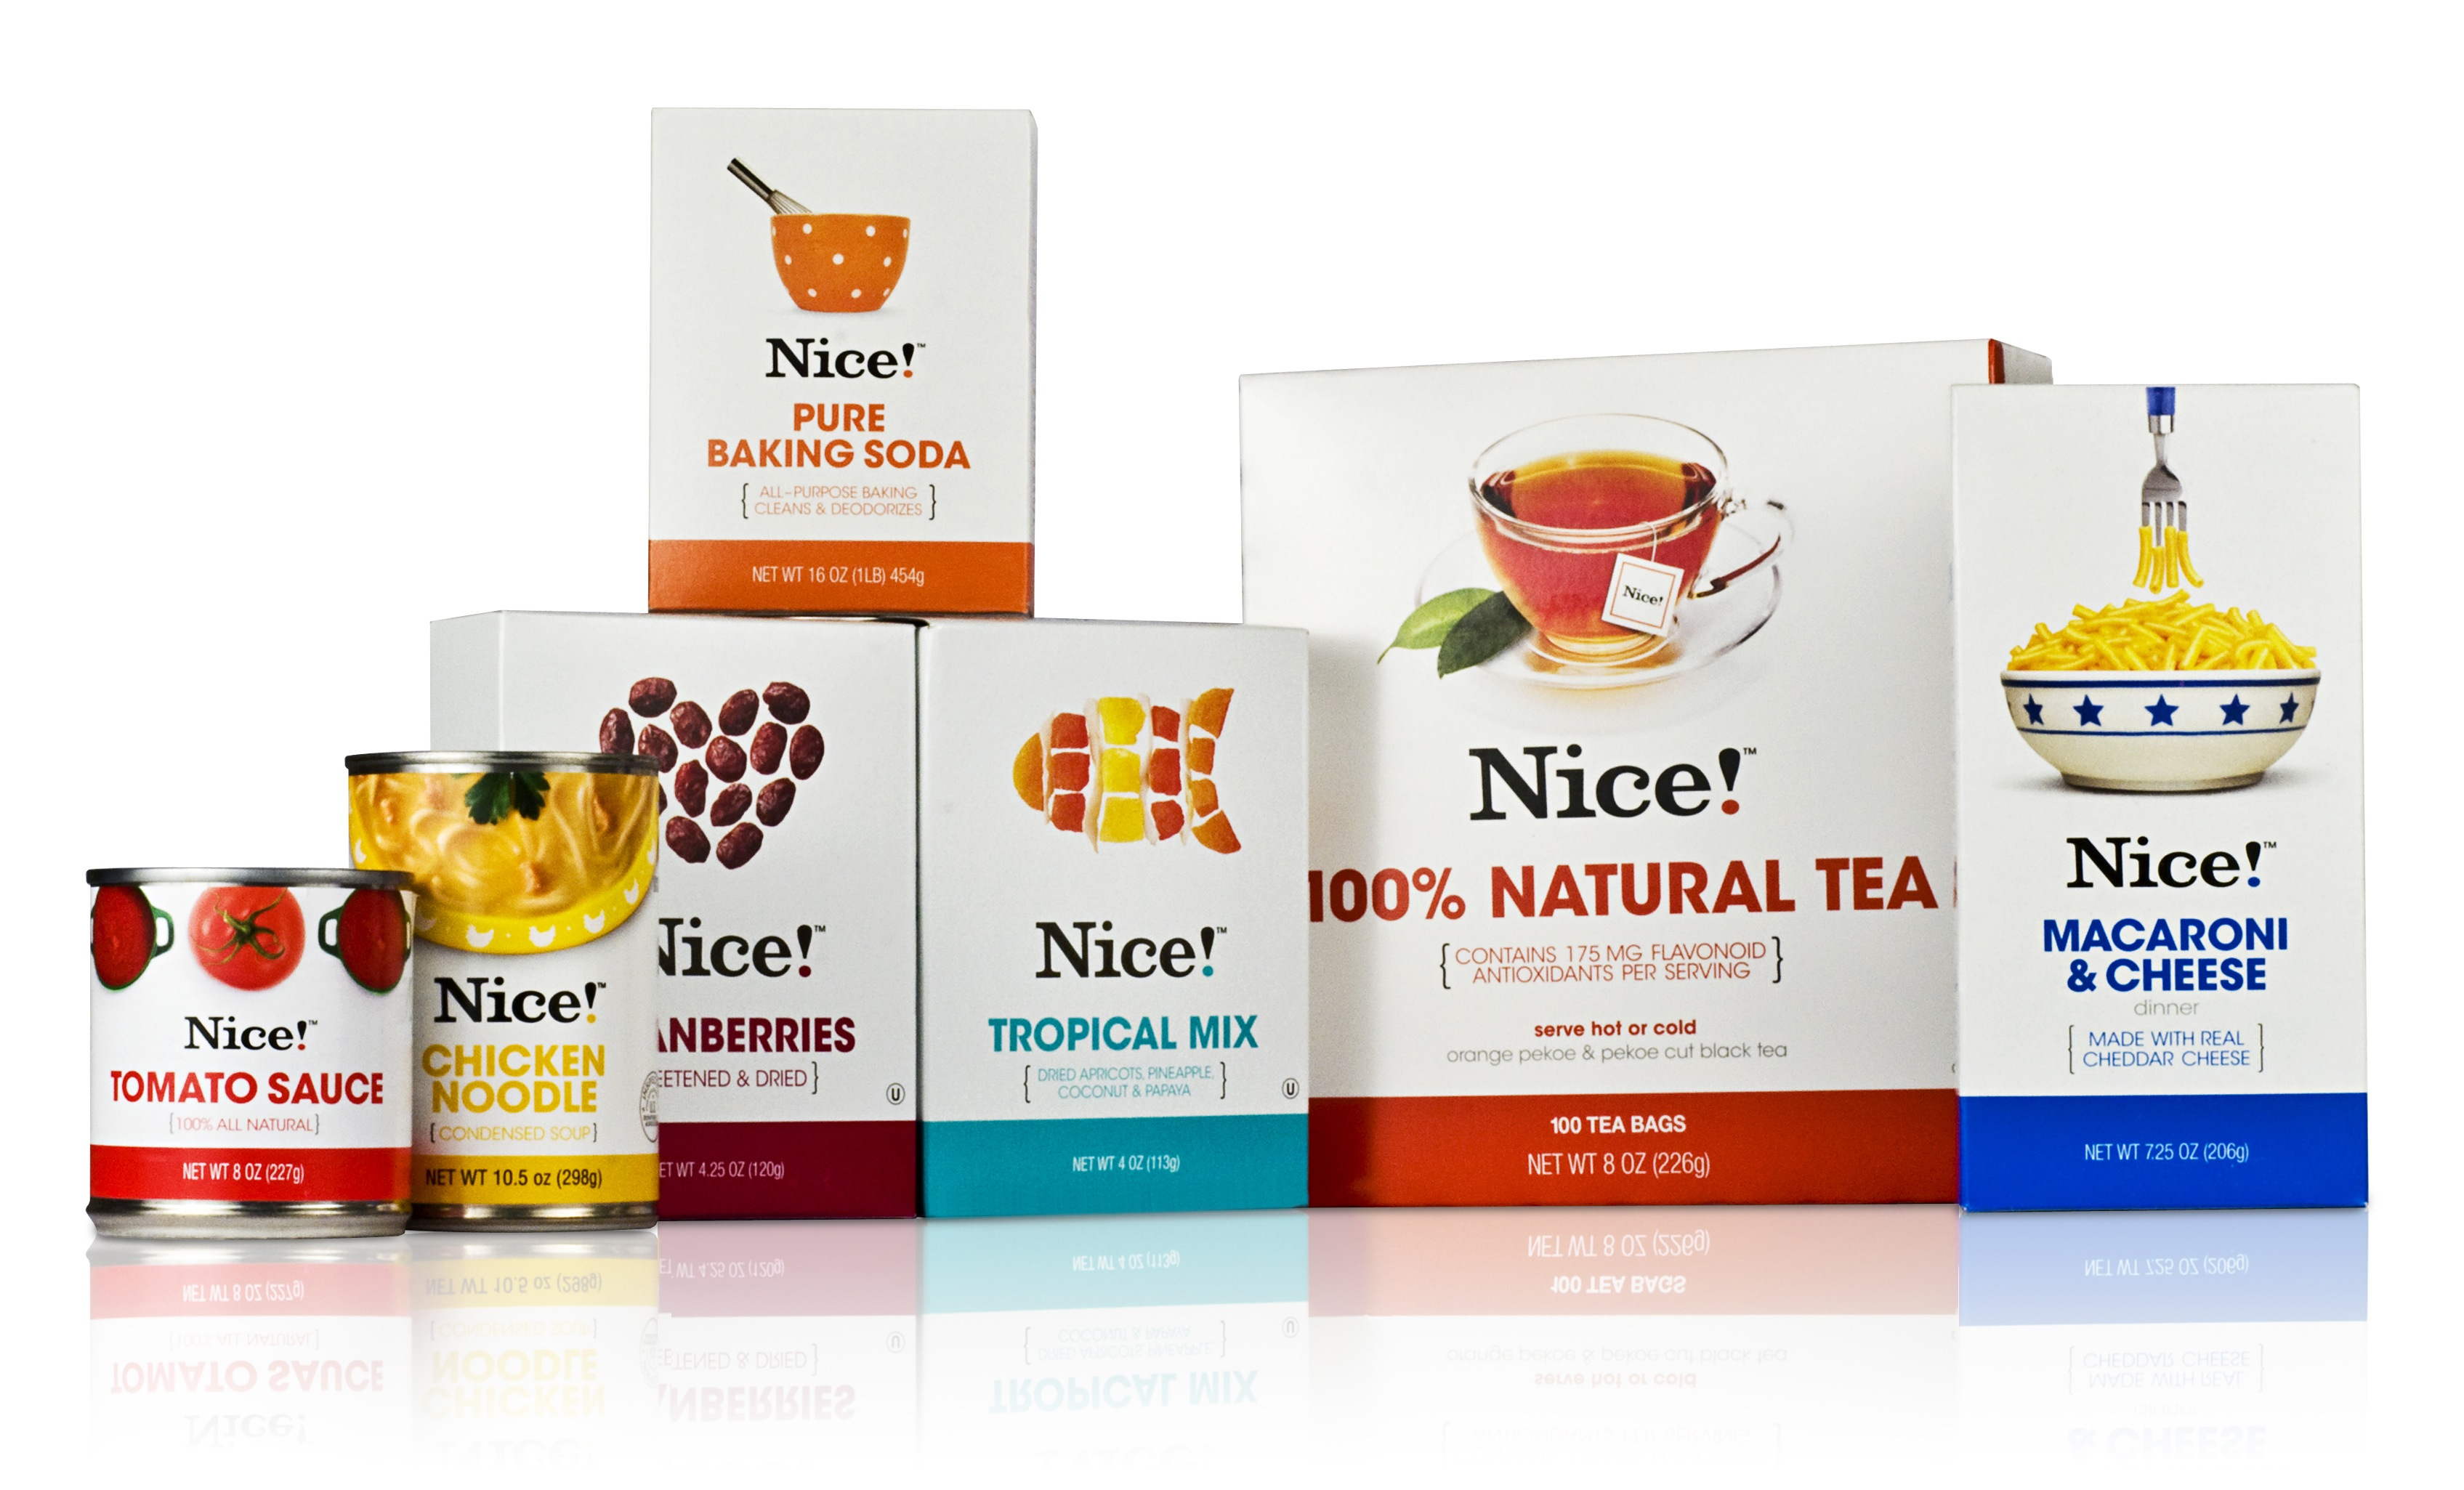 CBX Wins Gold in 2012 Store Brand Packaging Awards